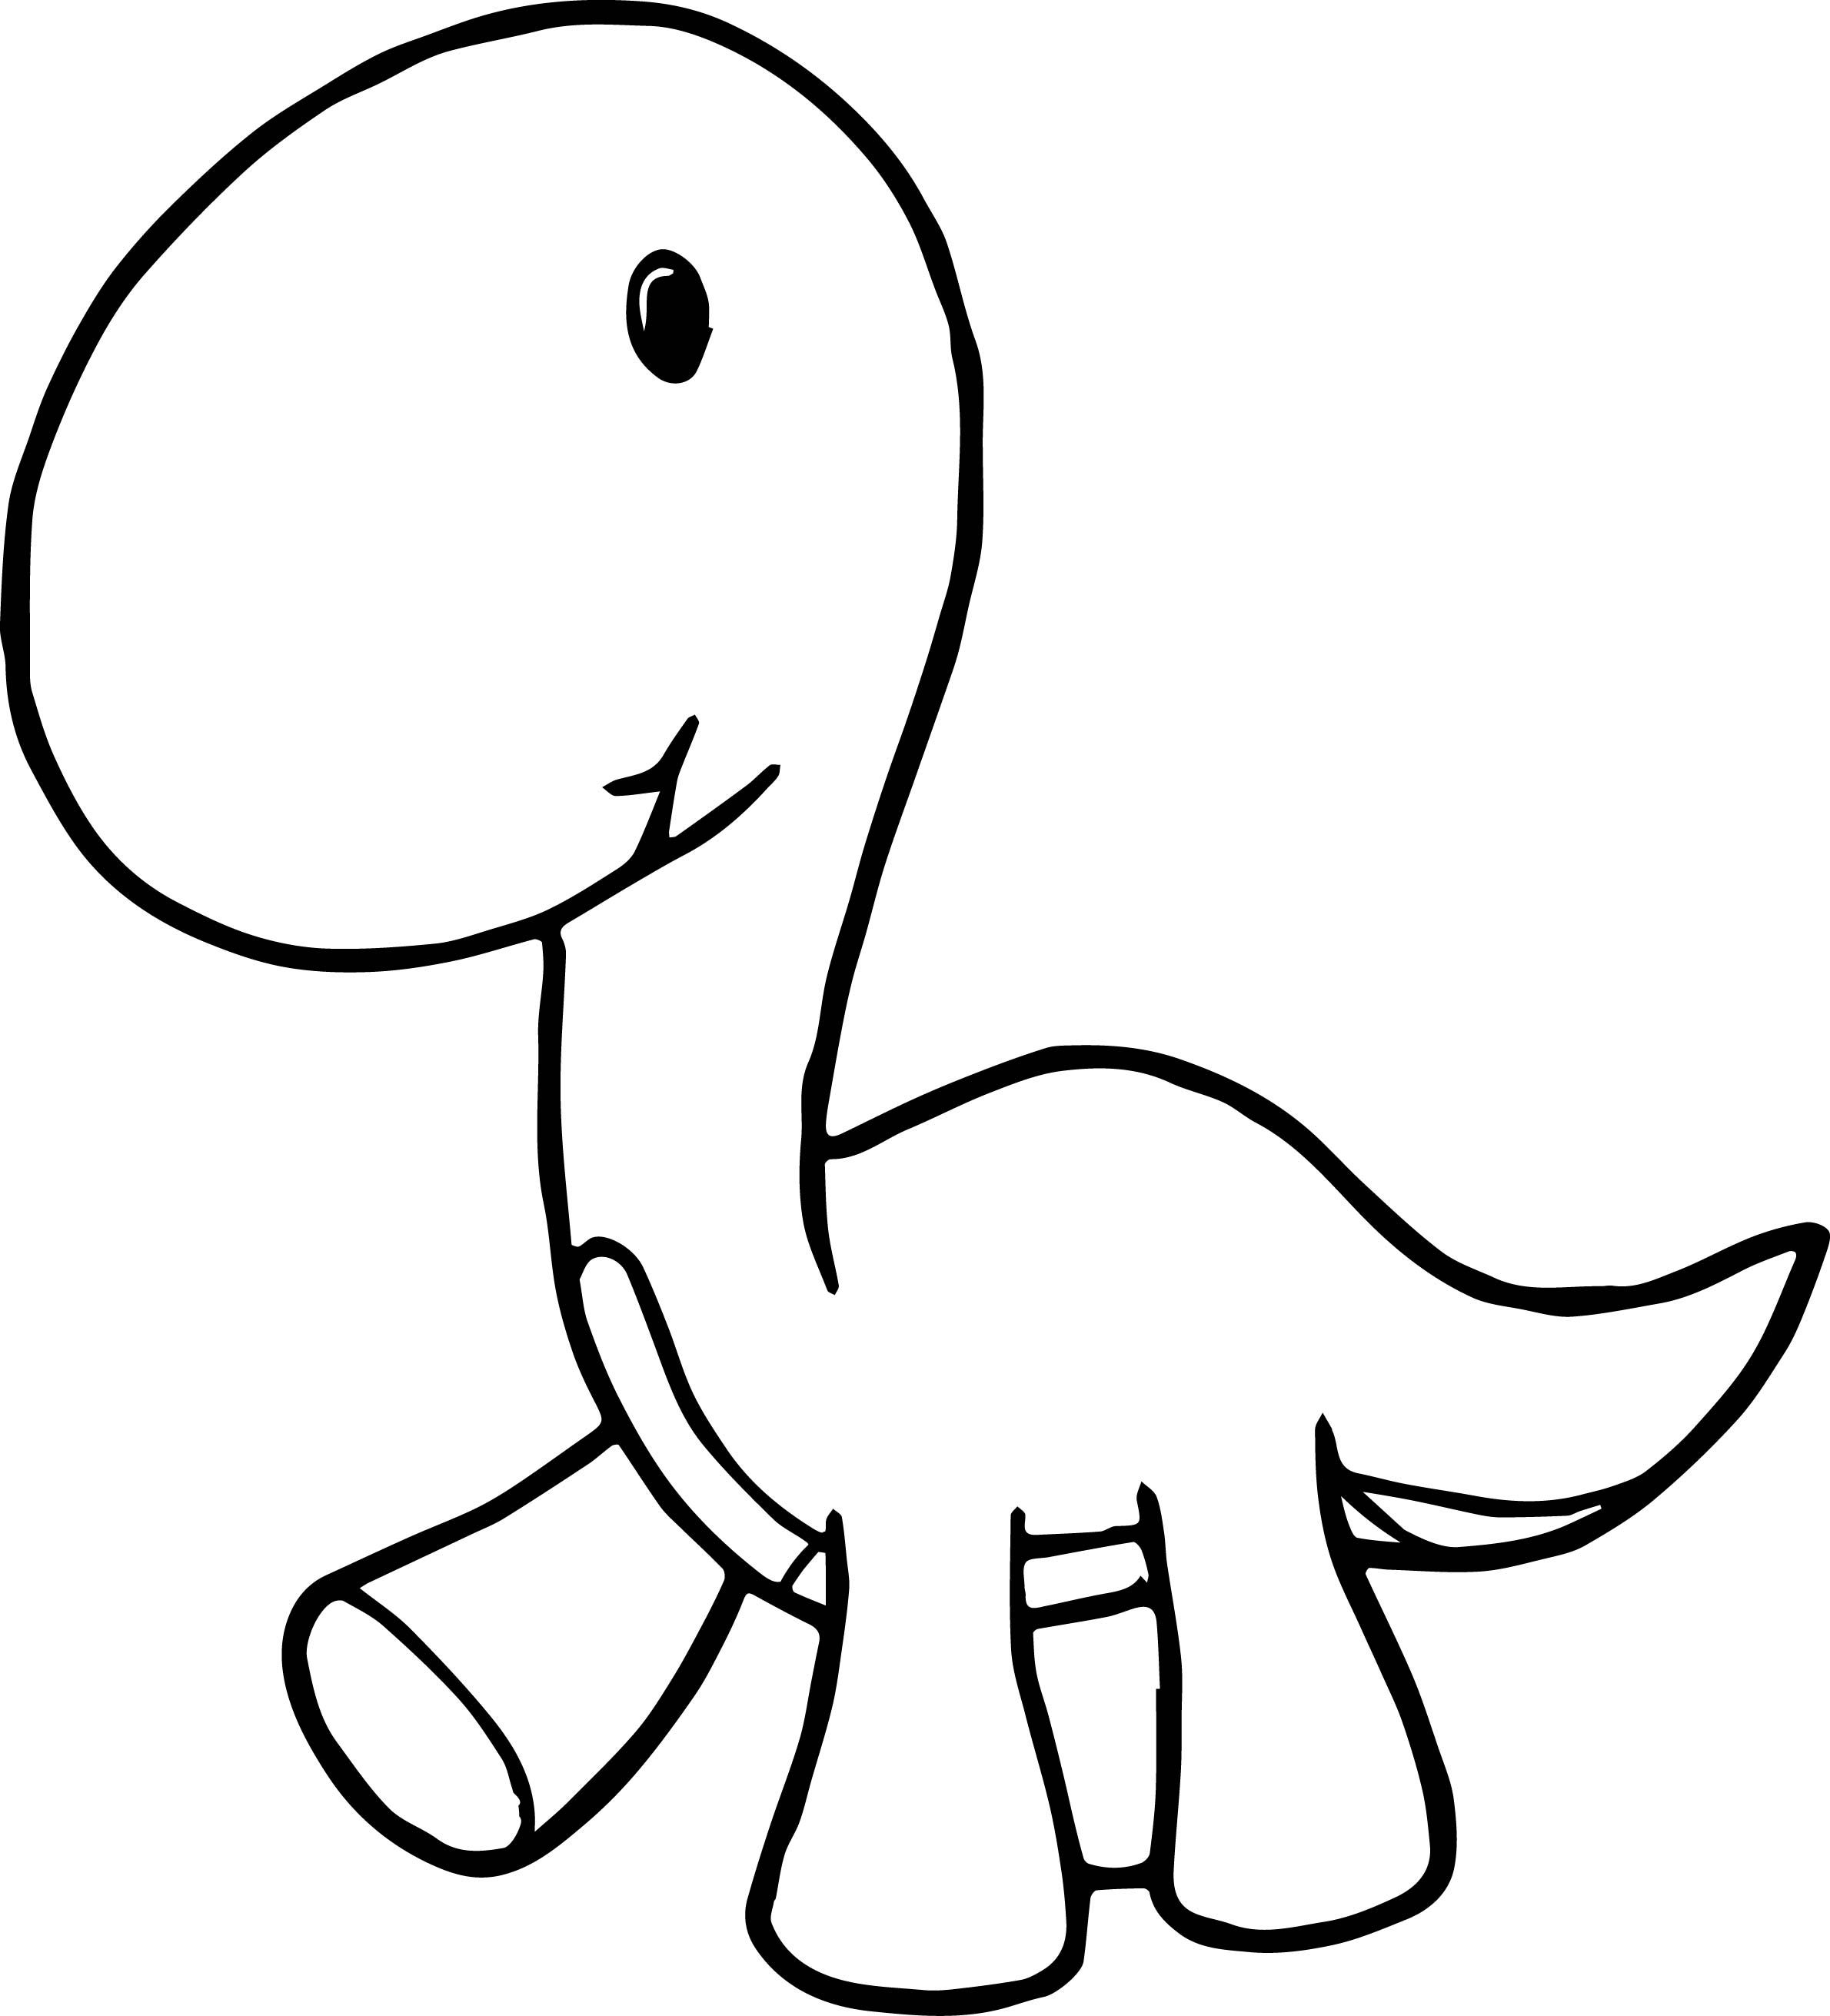 Baby Dinosaur Cartoon Coloring Page Dinosaur Coloring Pages